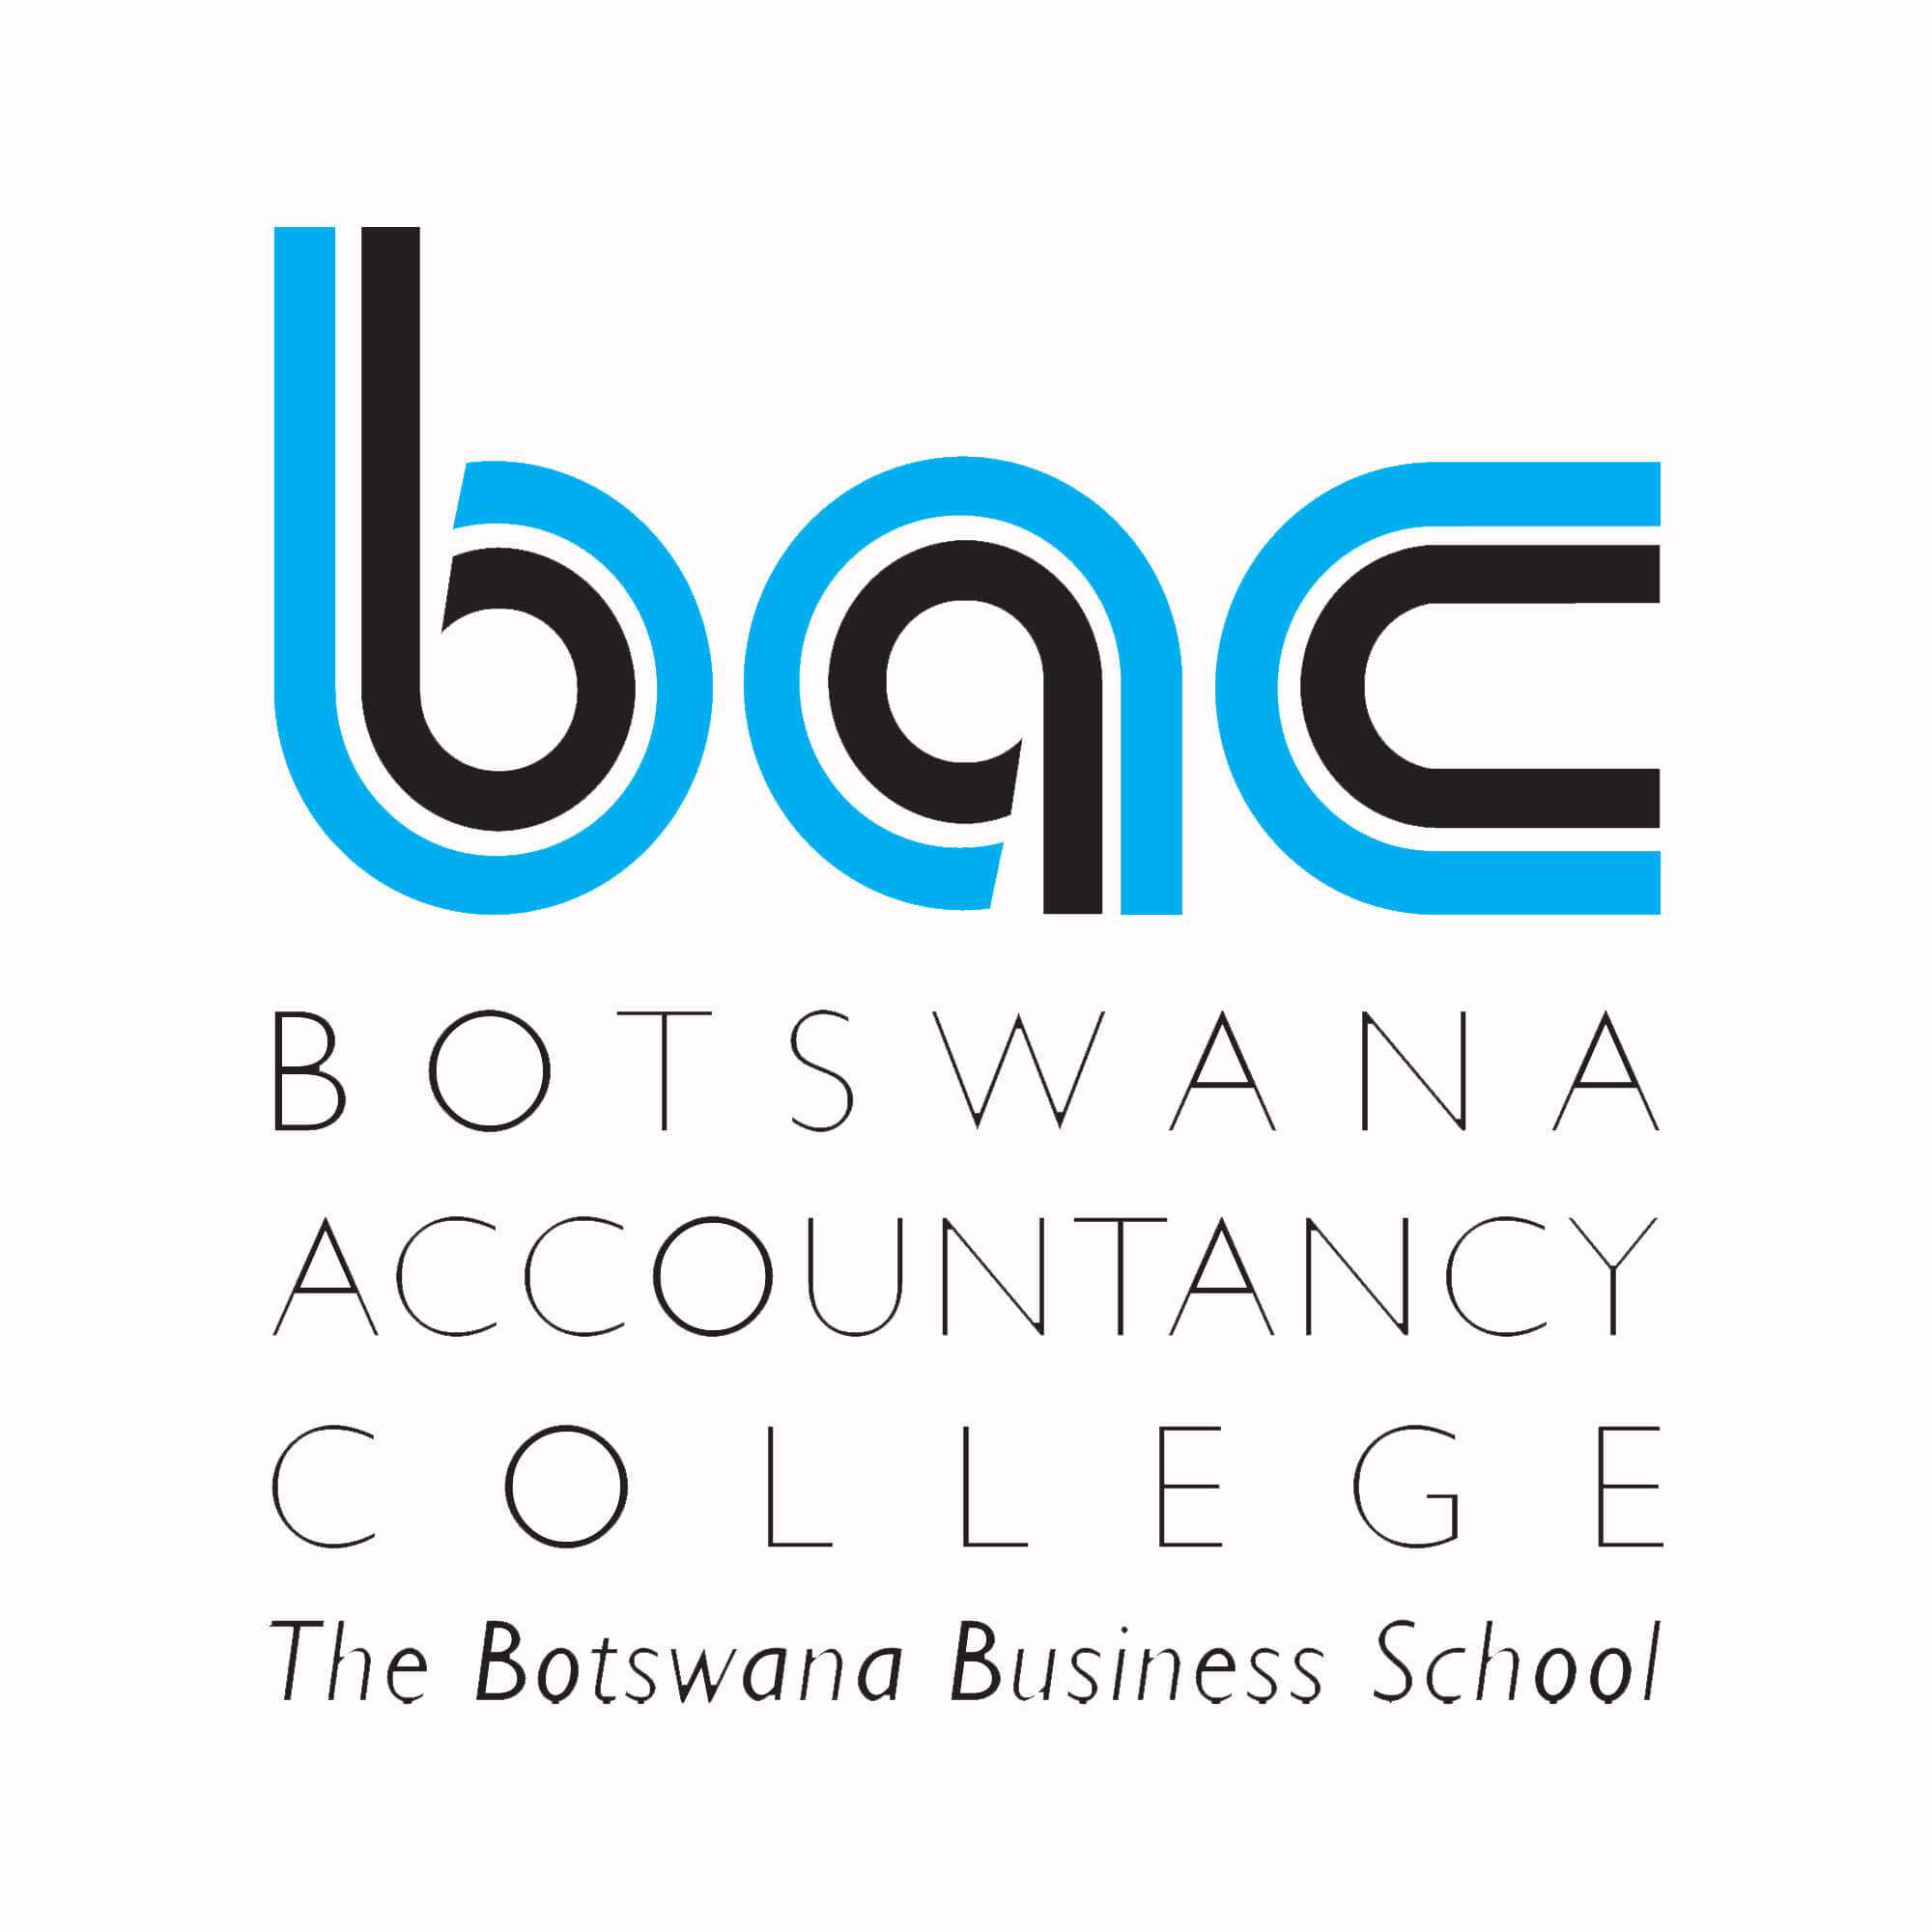 BAC college logo blue and black text